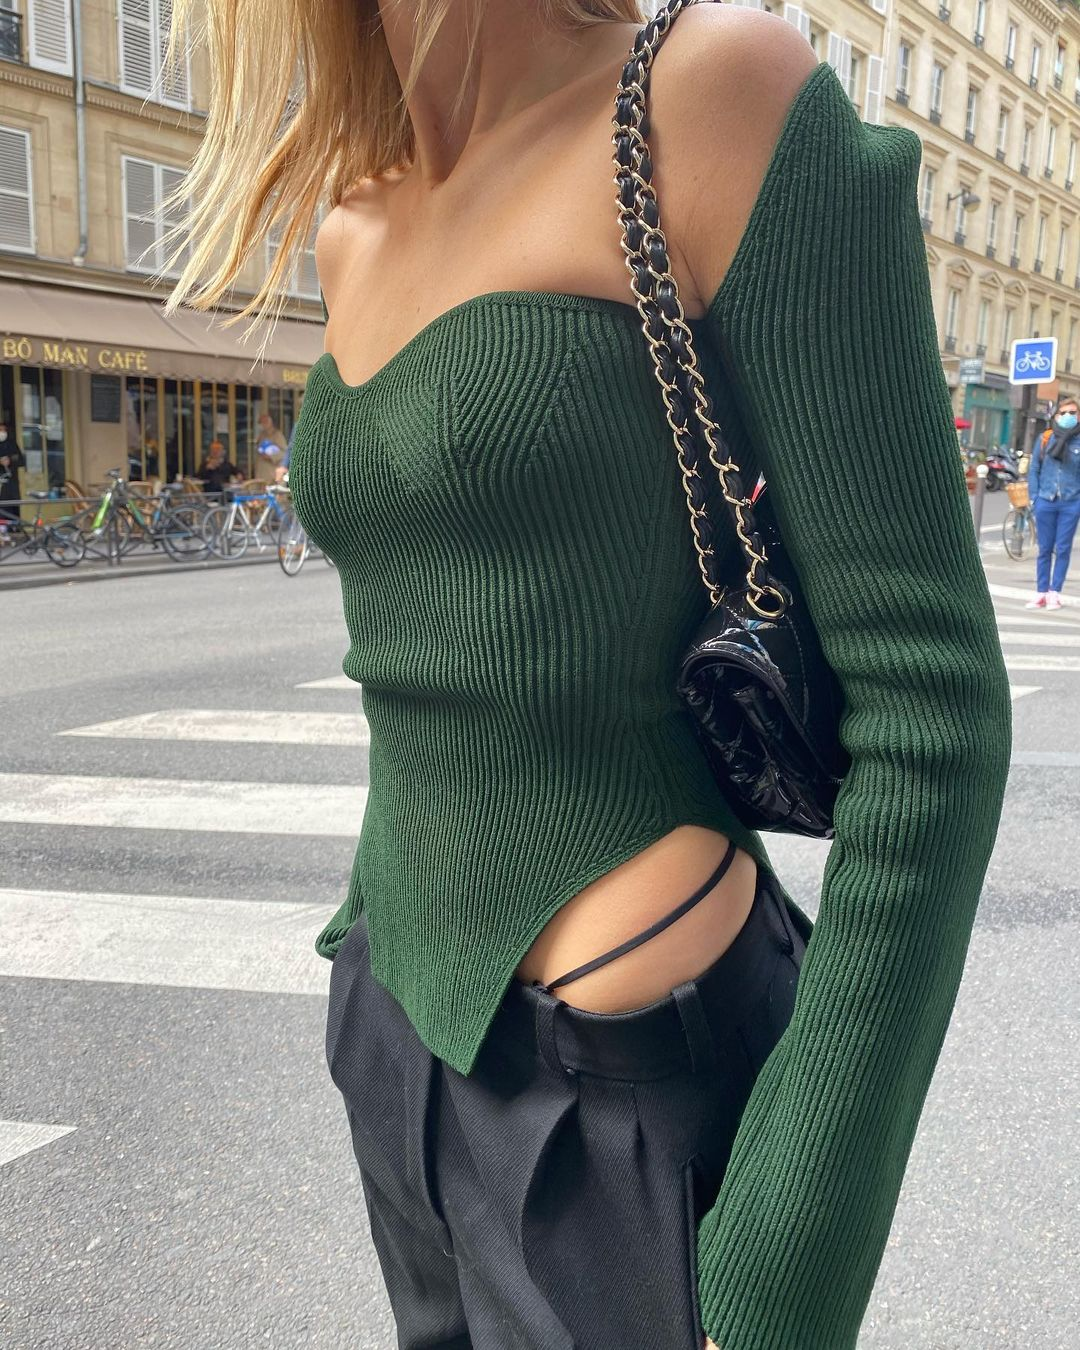 camille-charriere-khaite-maddy-ribbed-knit-top-instagram